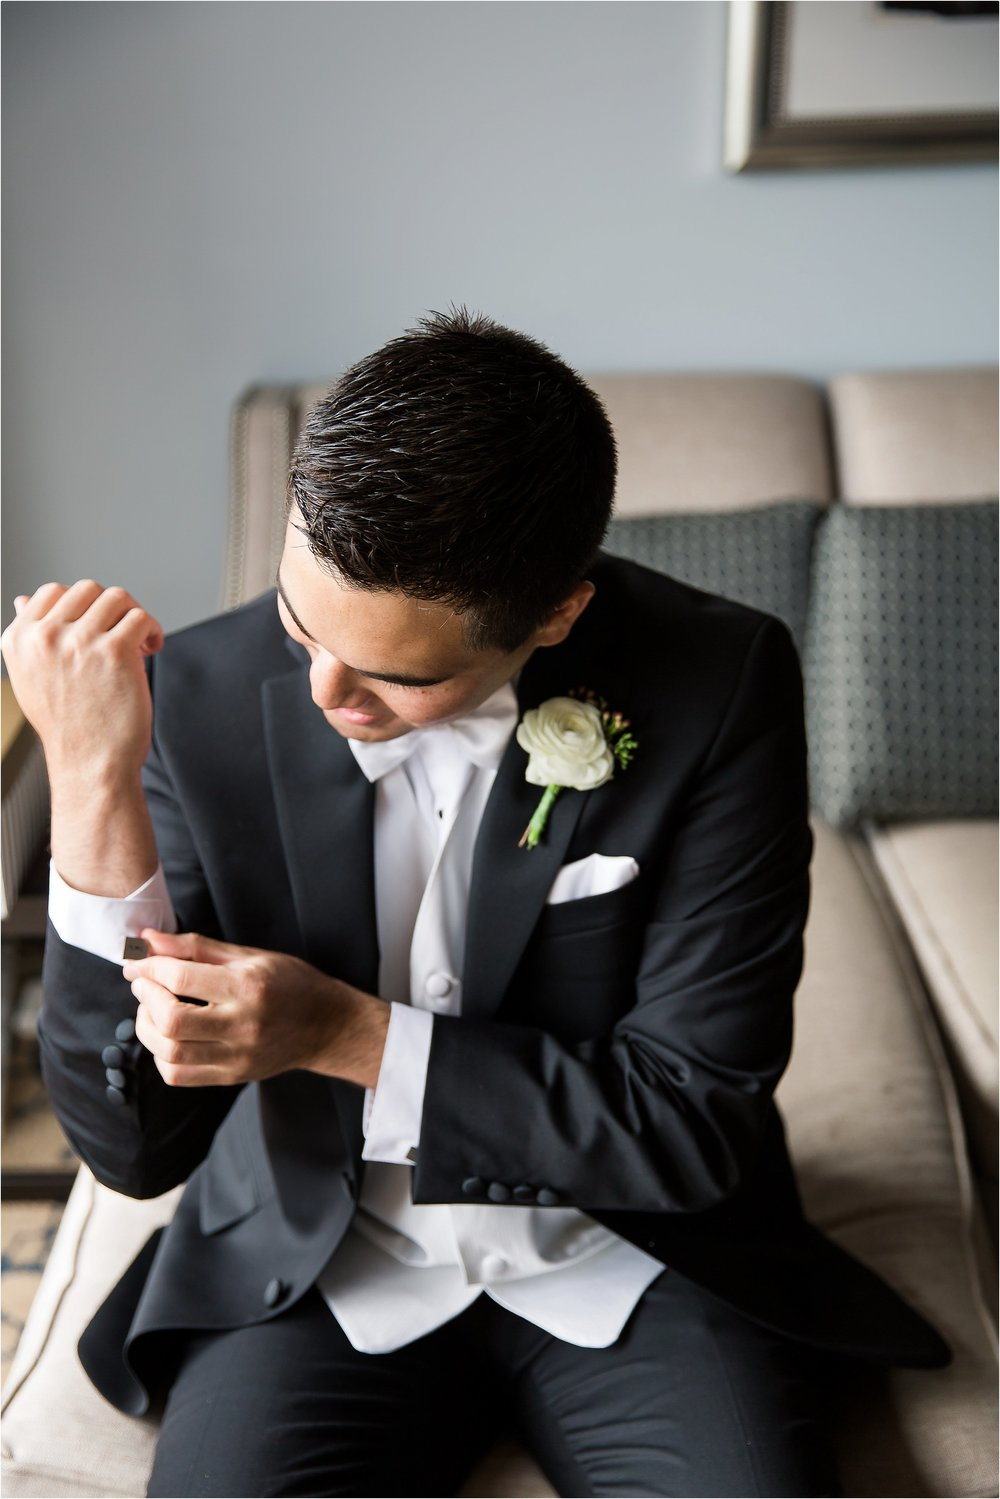 Groom Portraits in classic tux with white vest and bowtie getting ready moments at Bonnet Creek Wedding by PSJ Photography